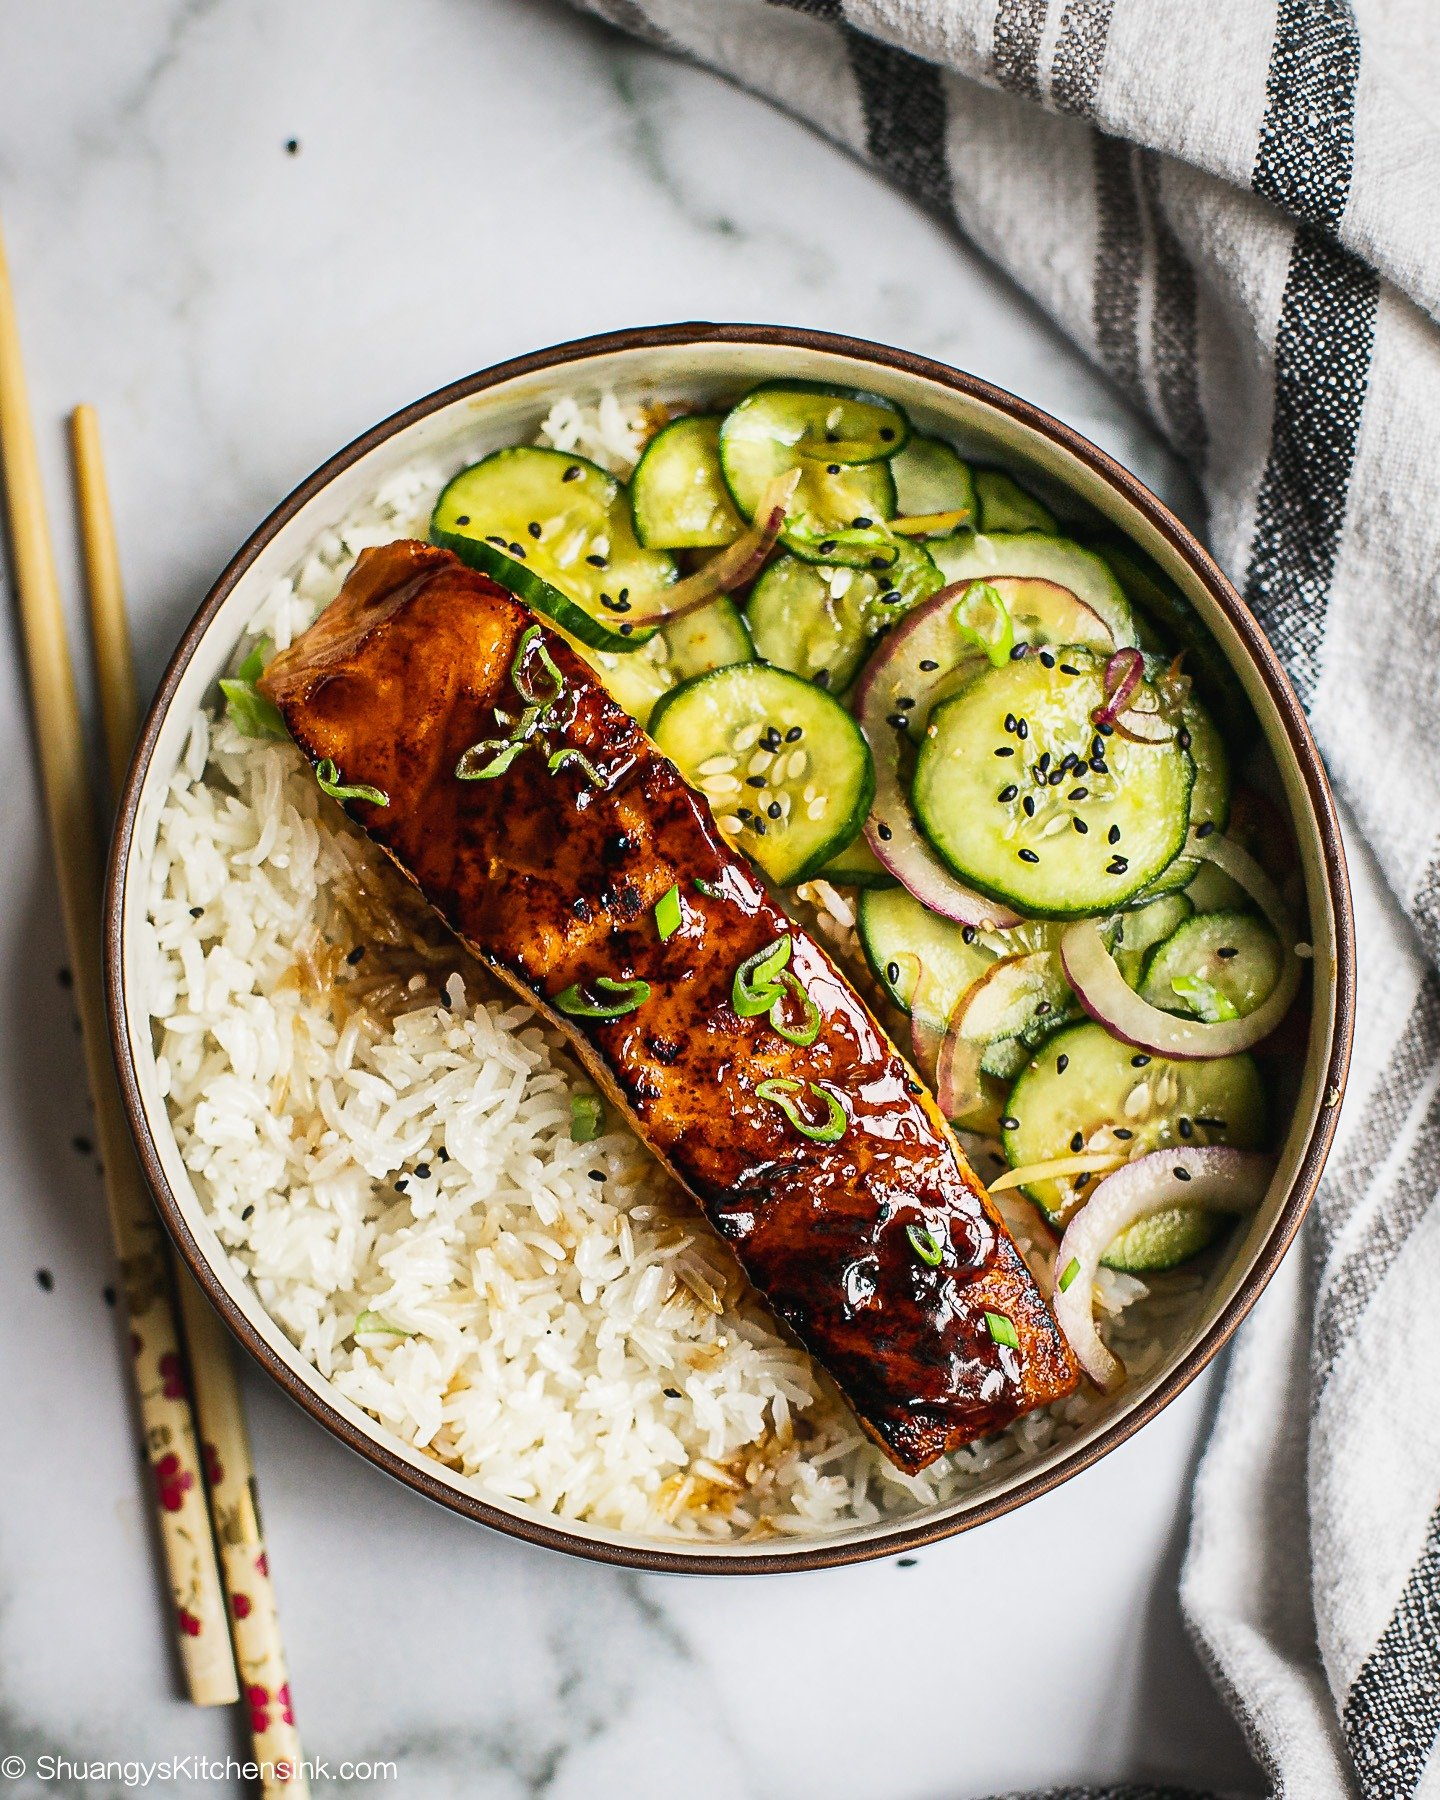 A bowl of jasmine rice crispy teriyaki salmon, asian cucumber salad. There is a pair of chopsticks on the side.